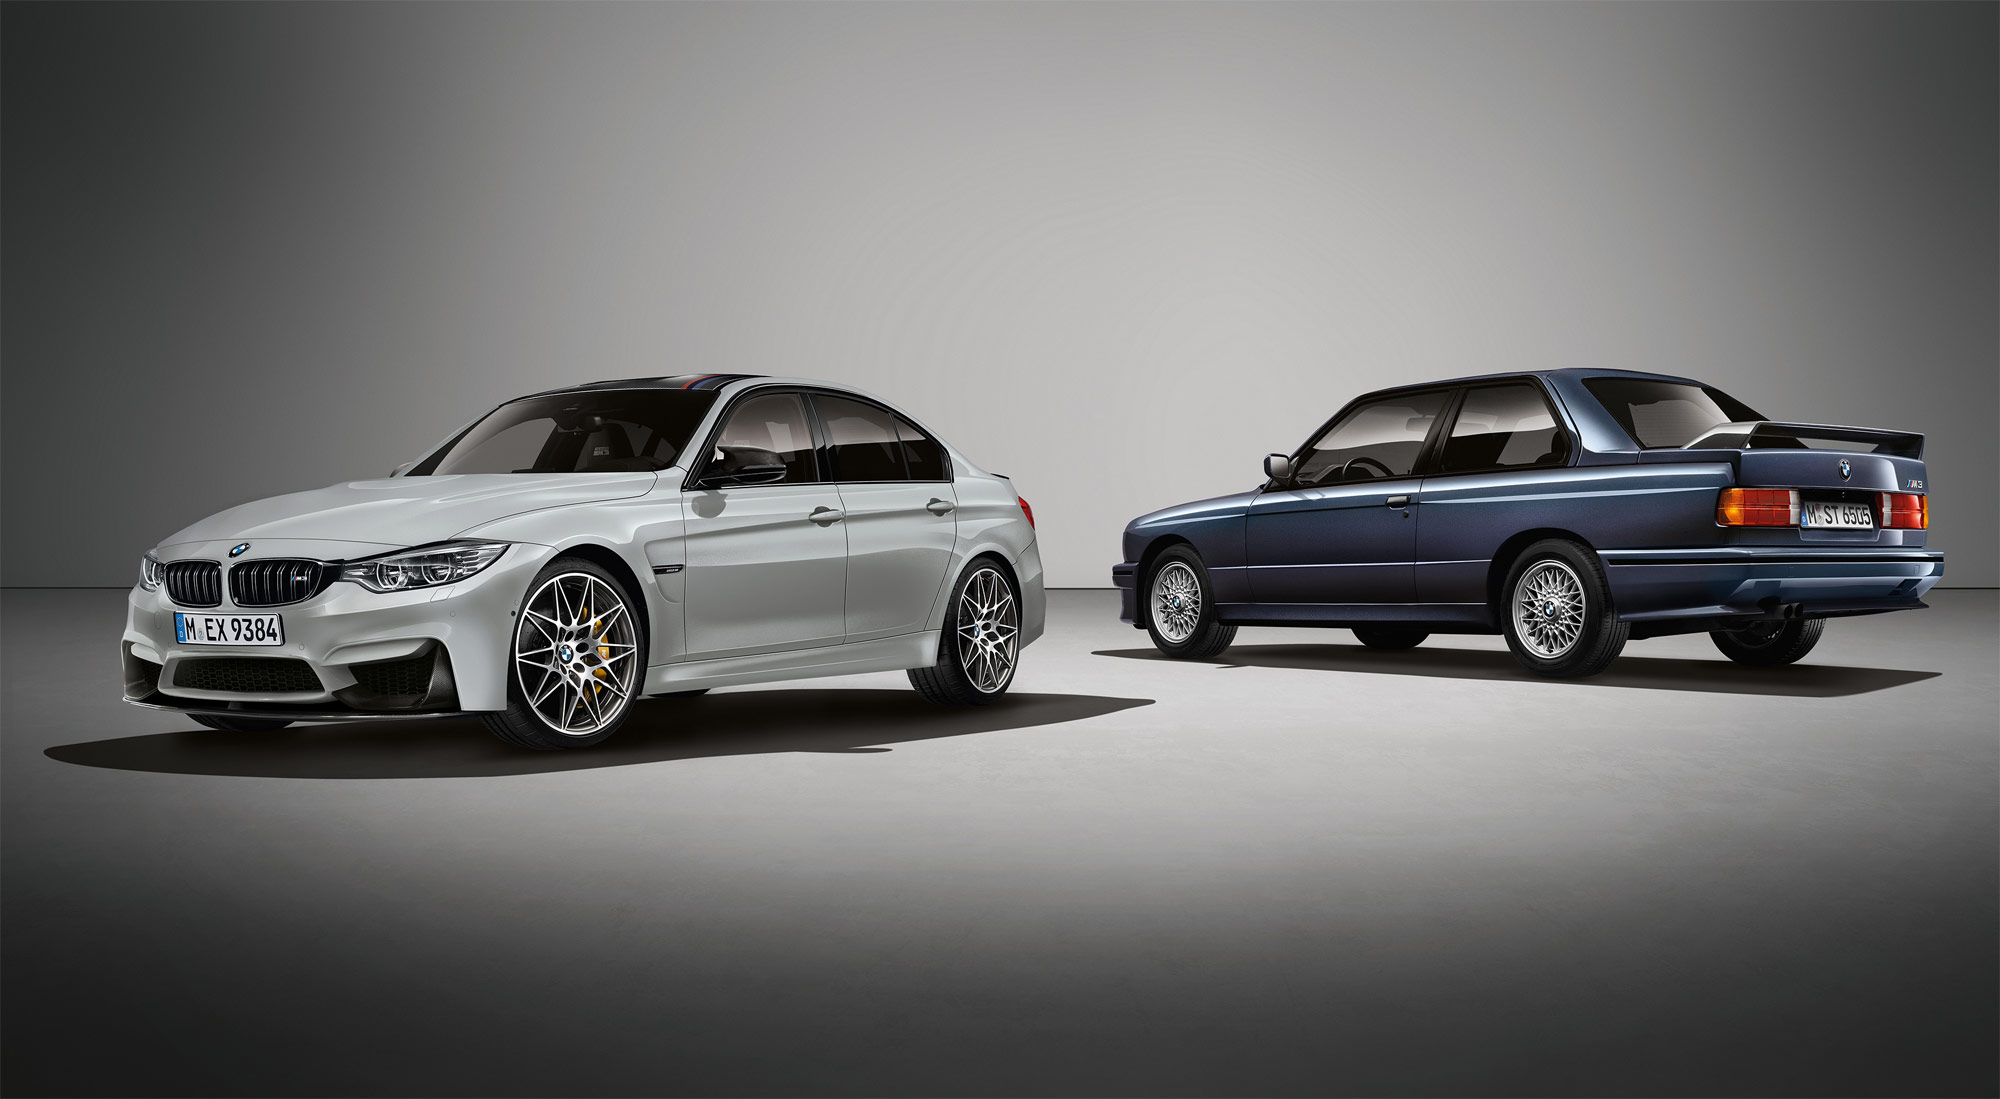 The BMW M3 30 Jahre Edition - Celebrating 30 Years Of Brilliance